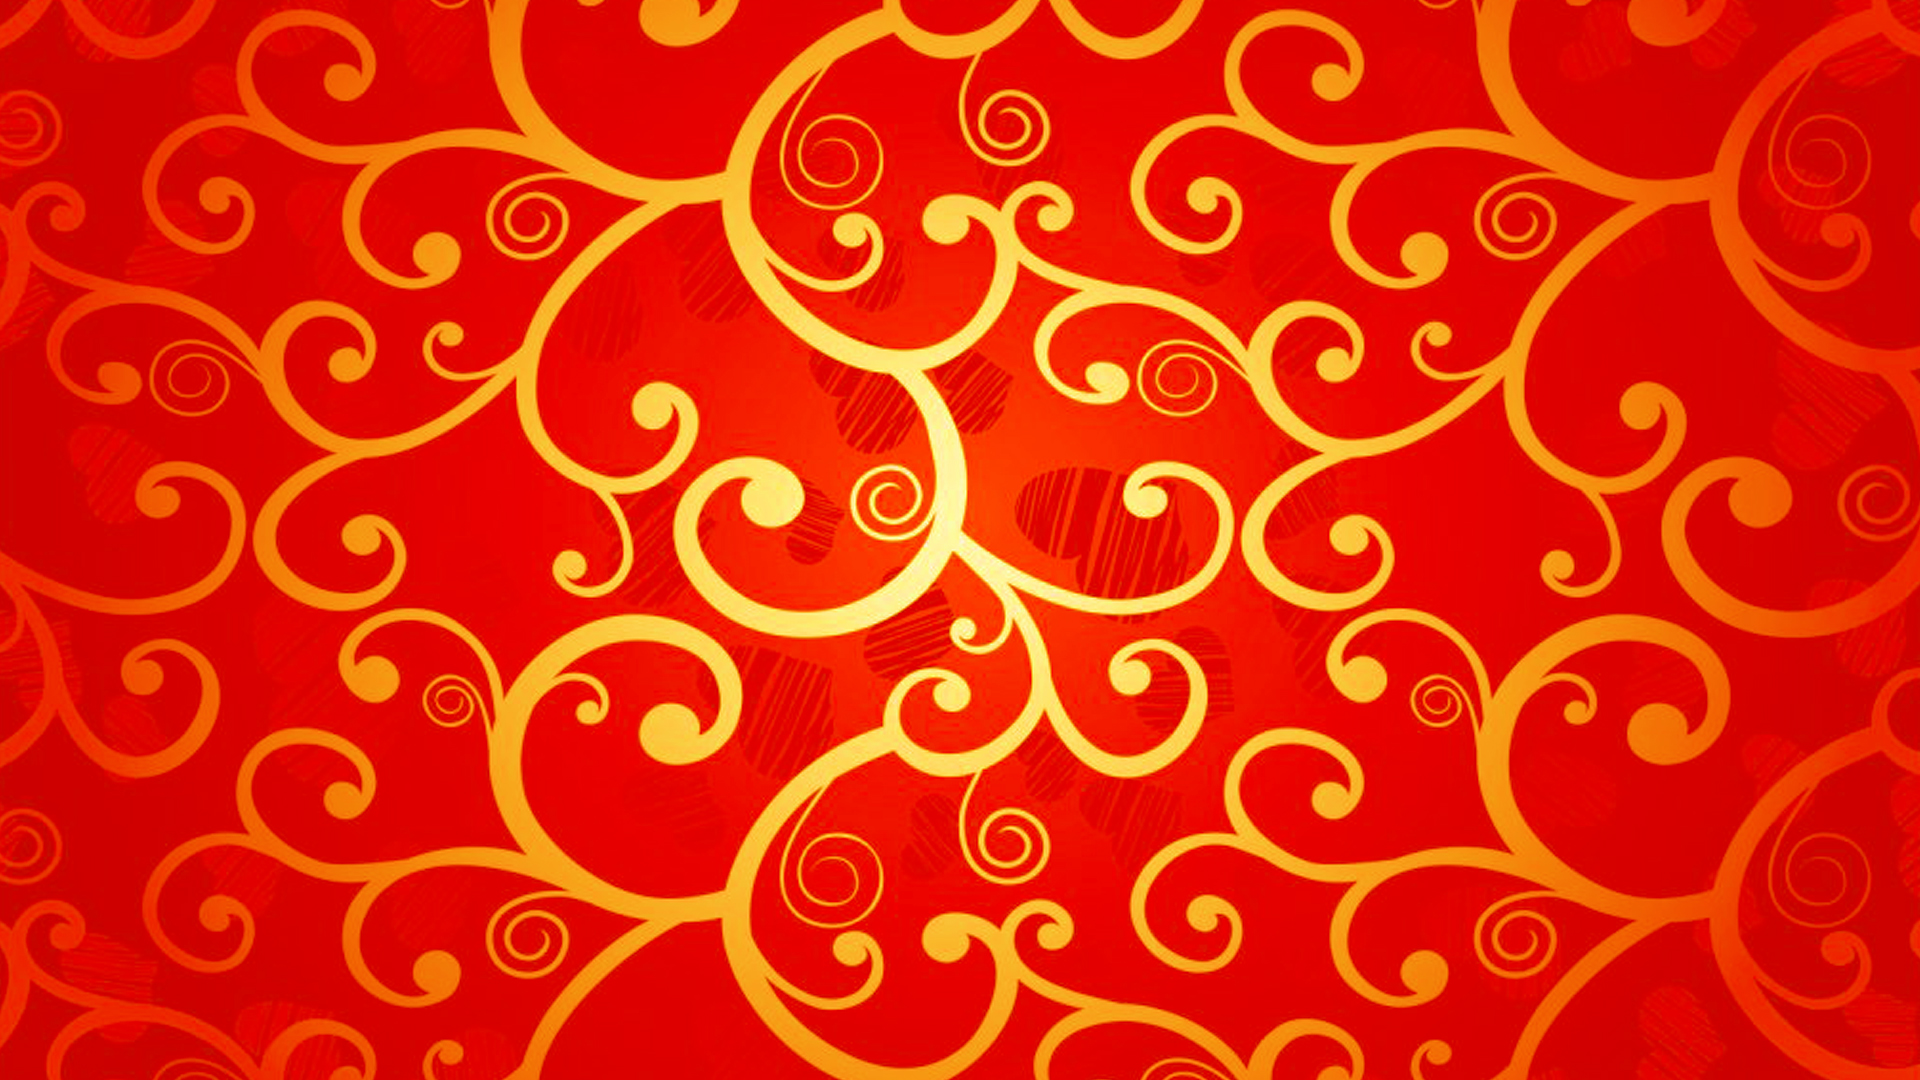 Red Chinese Wallpaper Designs 15 of 20 with Gold Floral